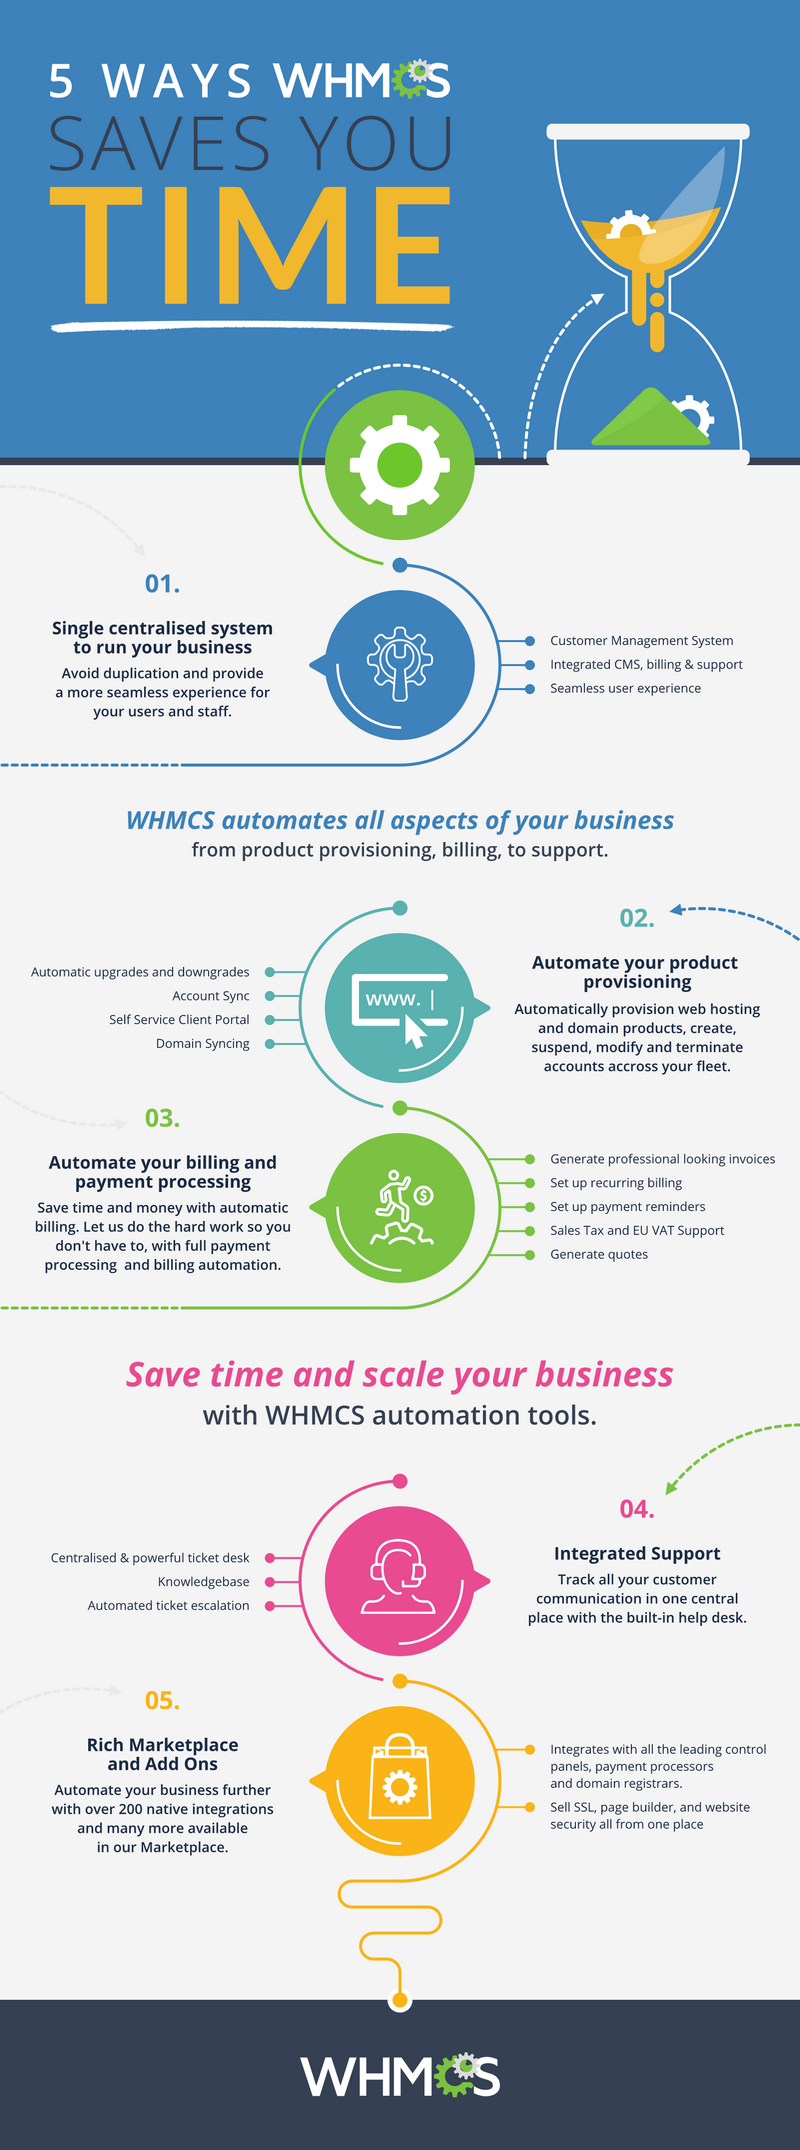 5-ways-whmcs-saves-you-time.png